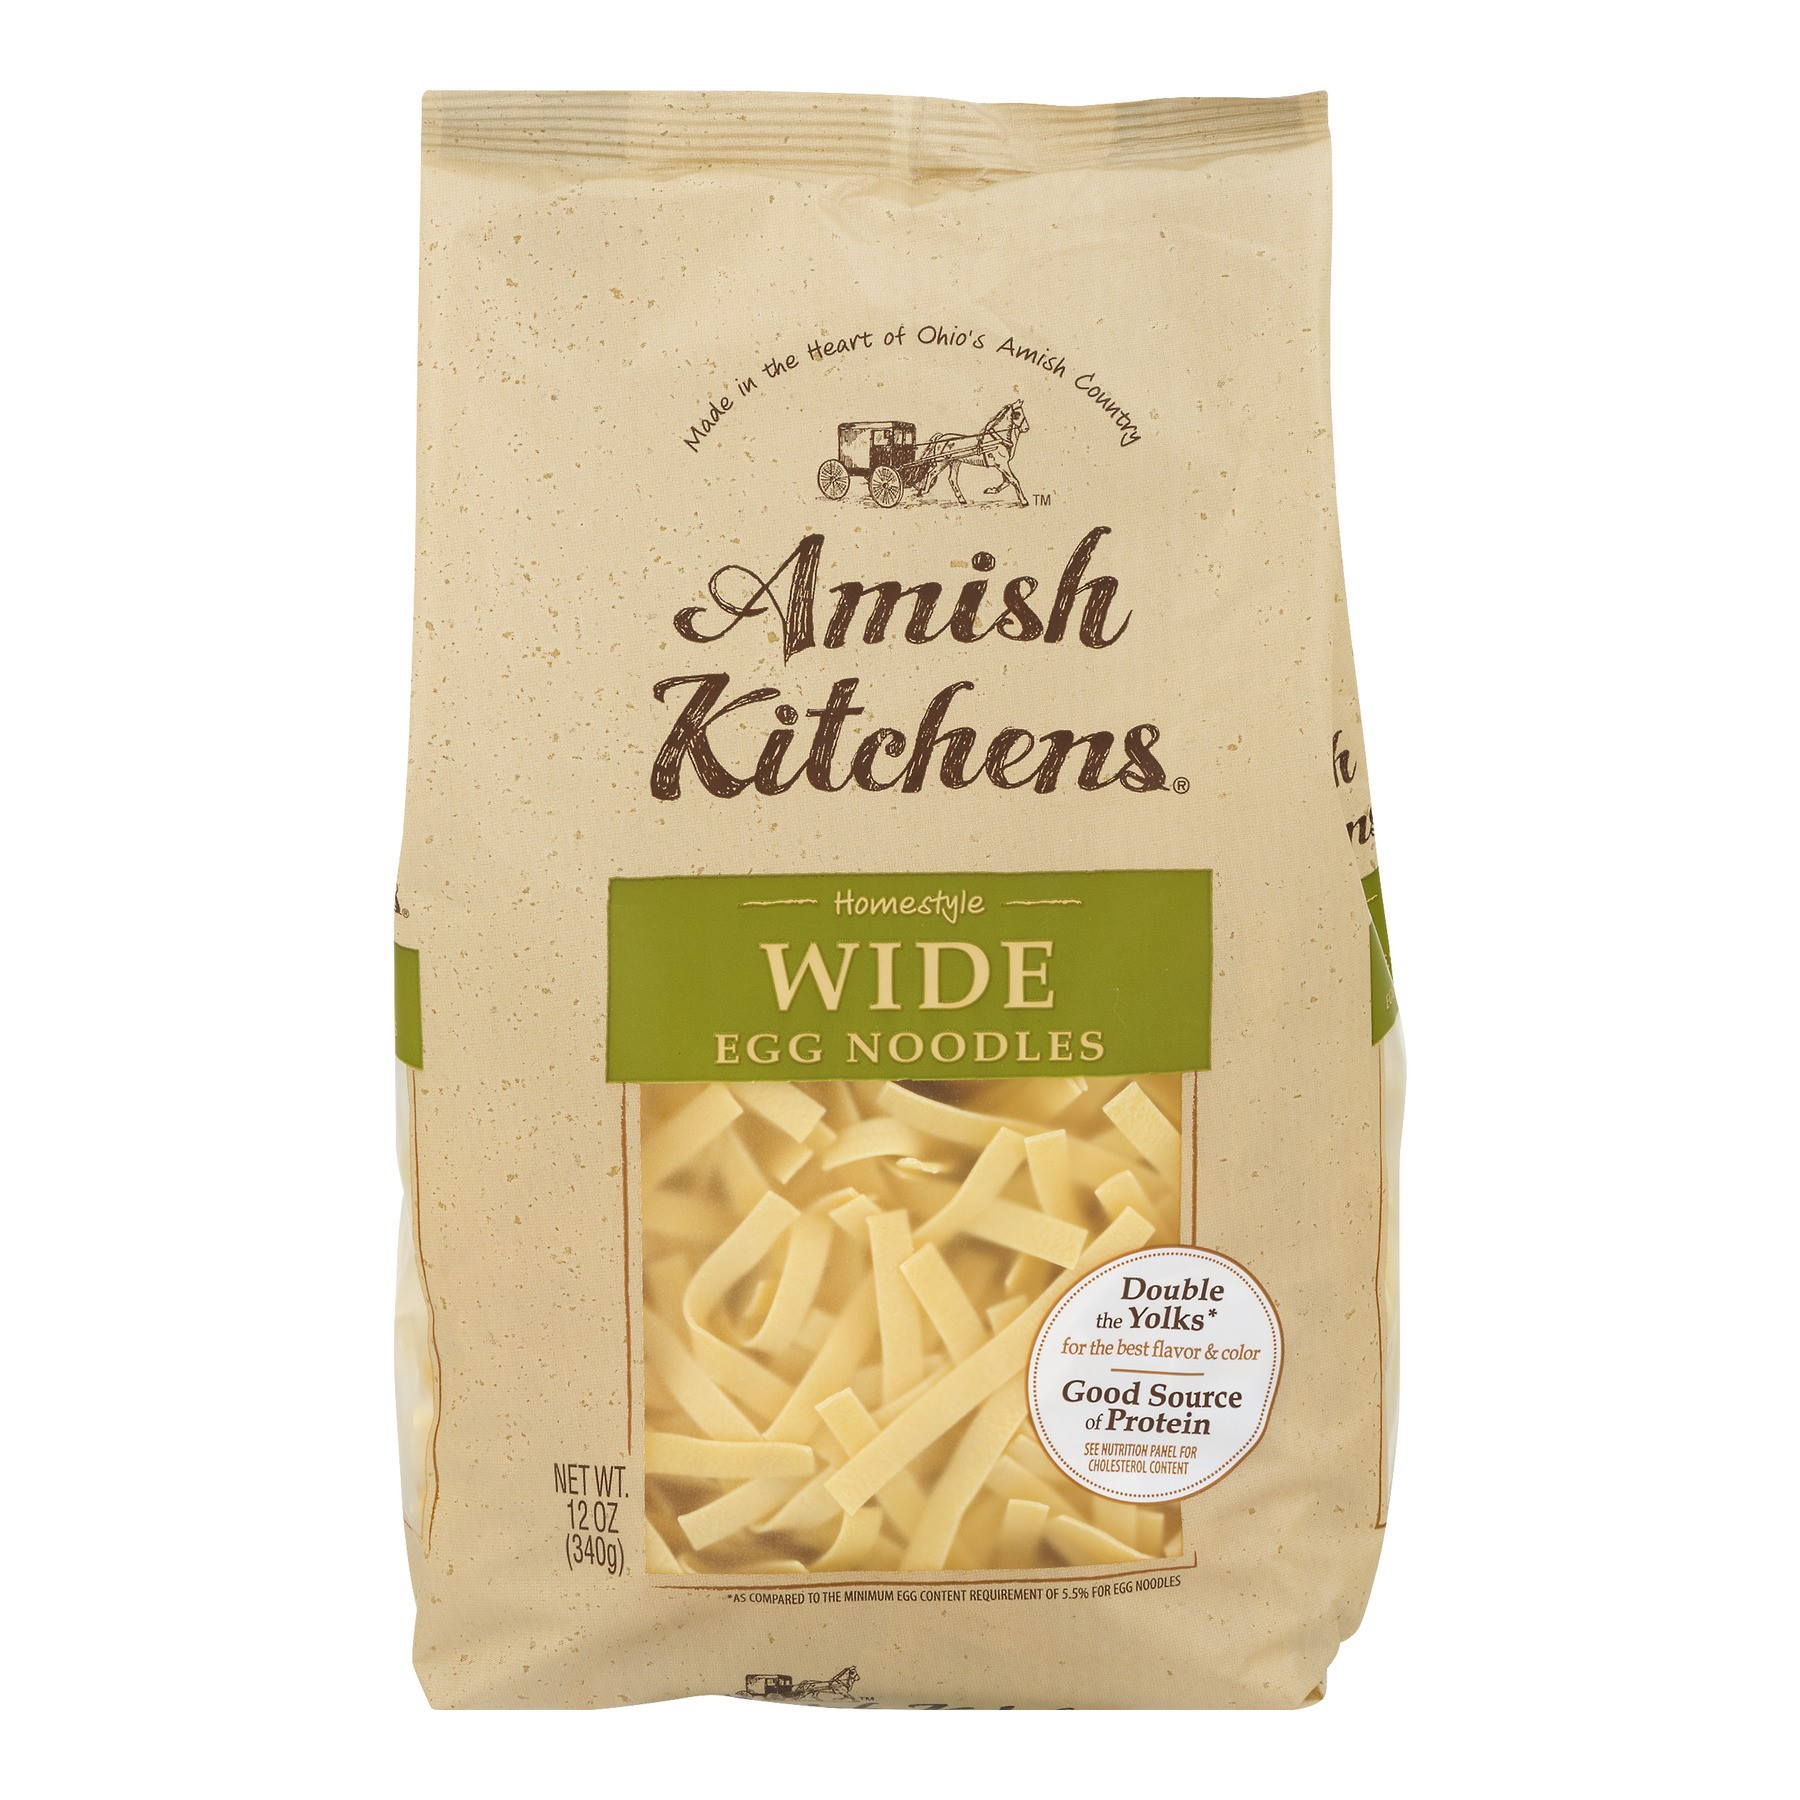 (12 Packs) Amish Kitchens Wide Egg Noodles, 0.75lb - $1.58/bag